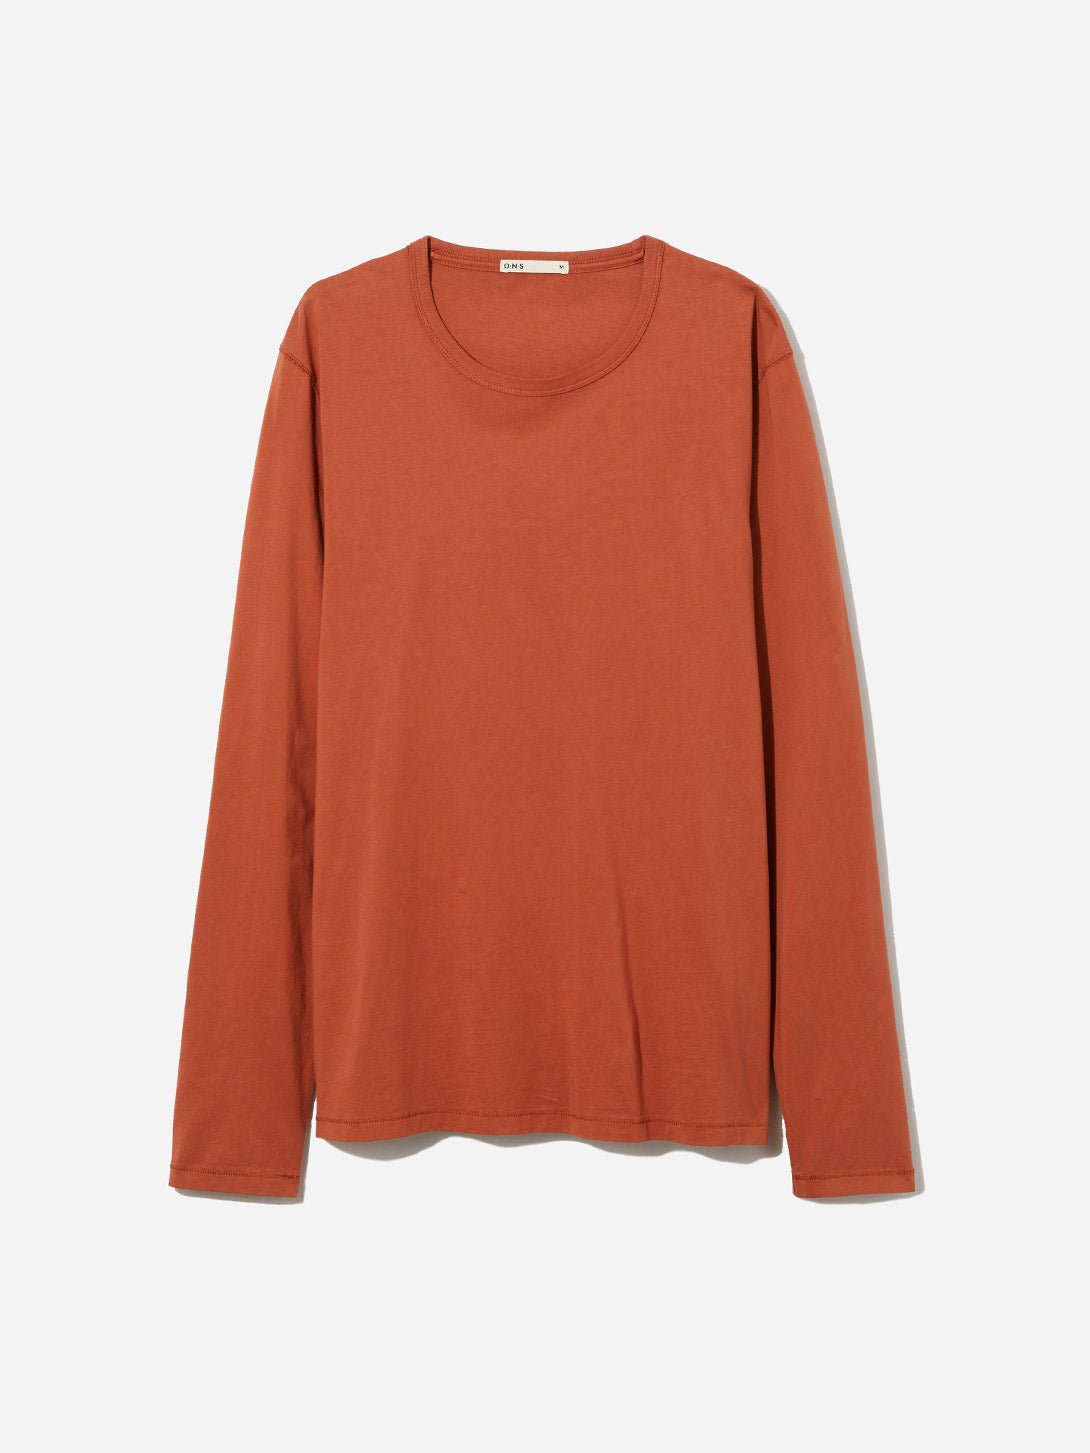 ORANGE long sleeve t shirt village crew neck long sleeve tee indigo orange